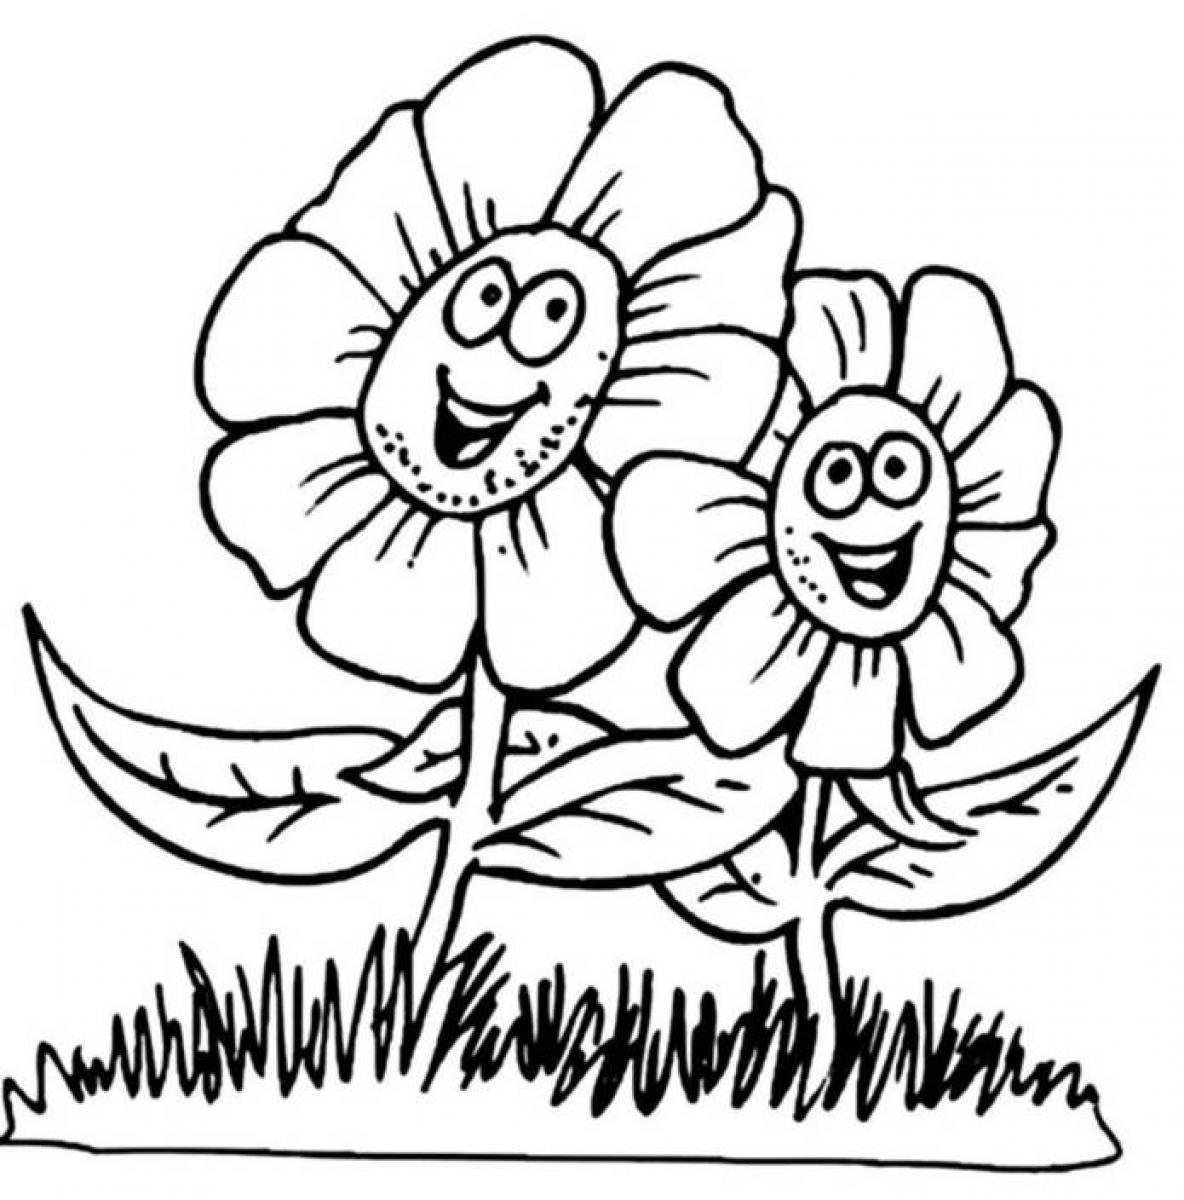 big flower coloring pages - photo#27